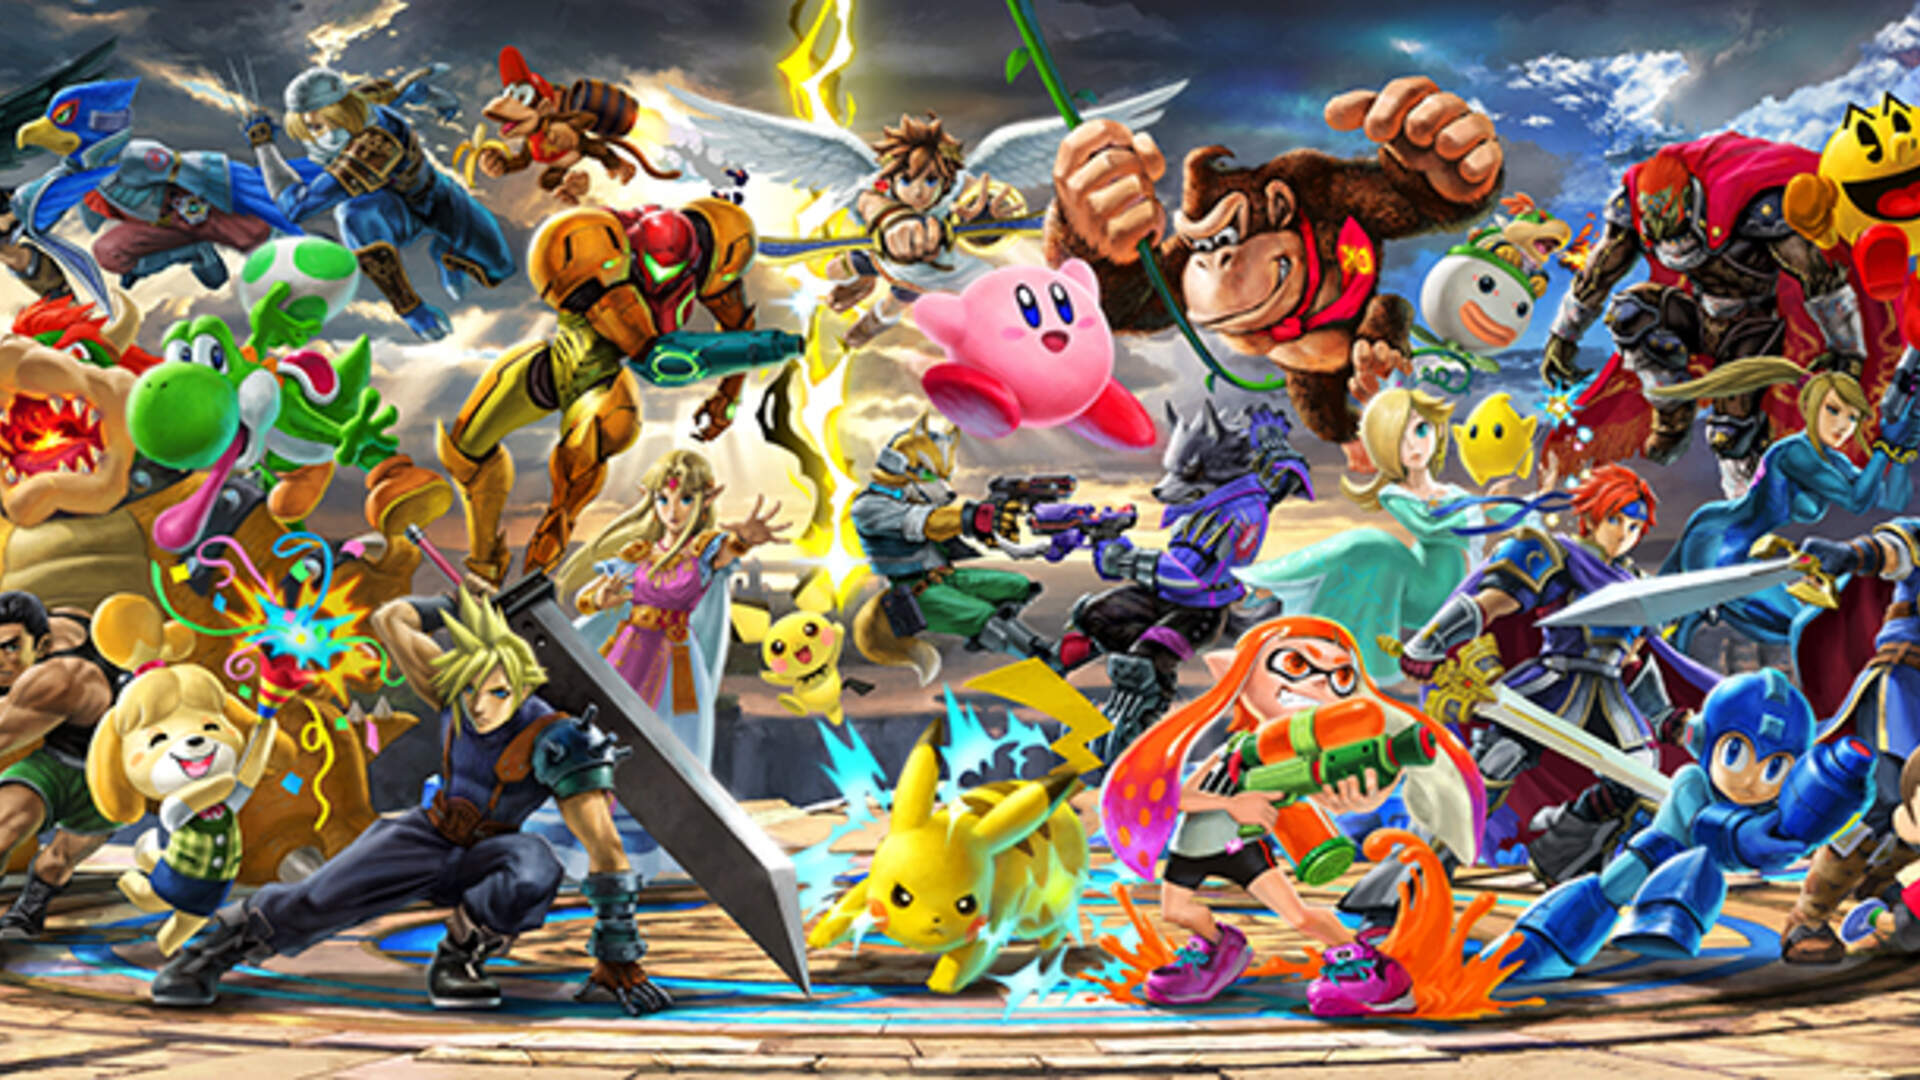 Super Smash Bros Ultimate Wallpaper Hd Saffron Photography